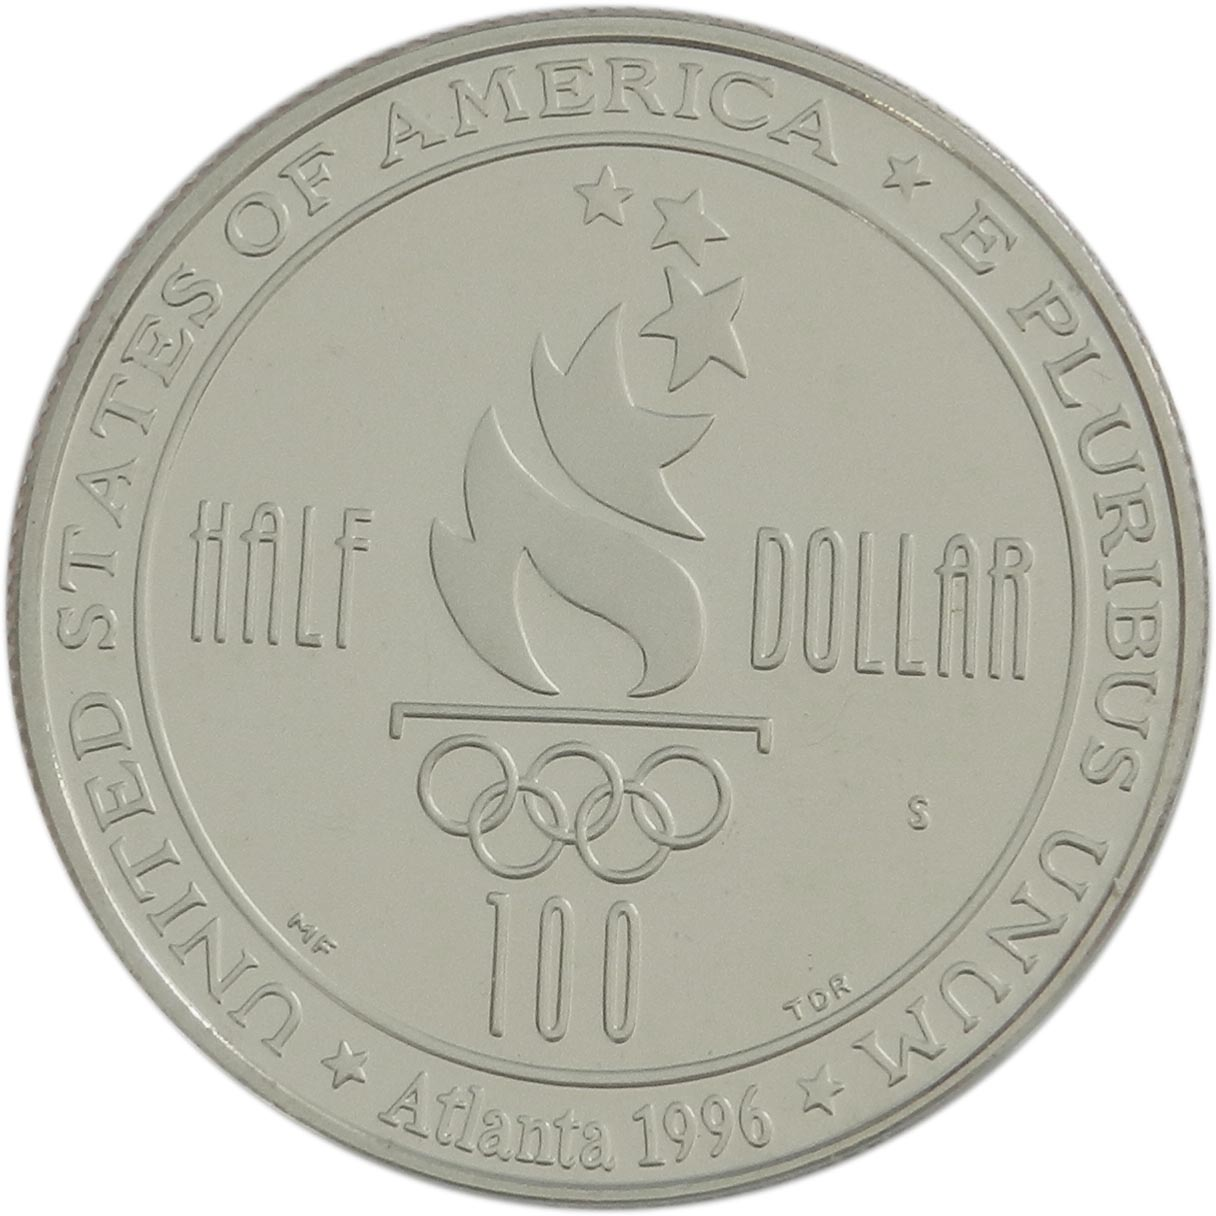 1996 US PROOF Half Dollar Atlanta Olympics Basketball 50c